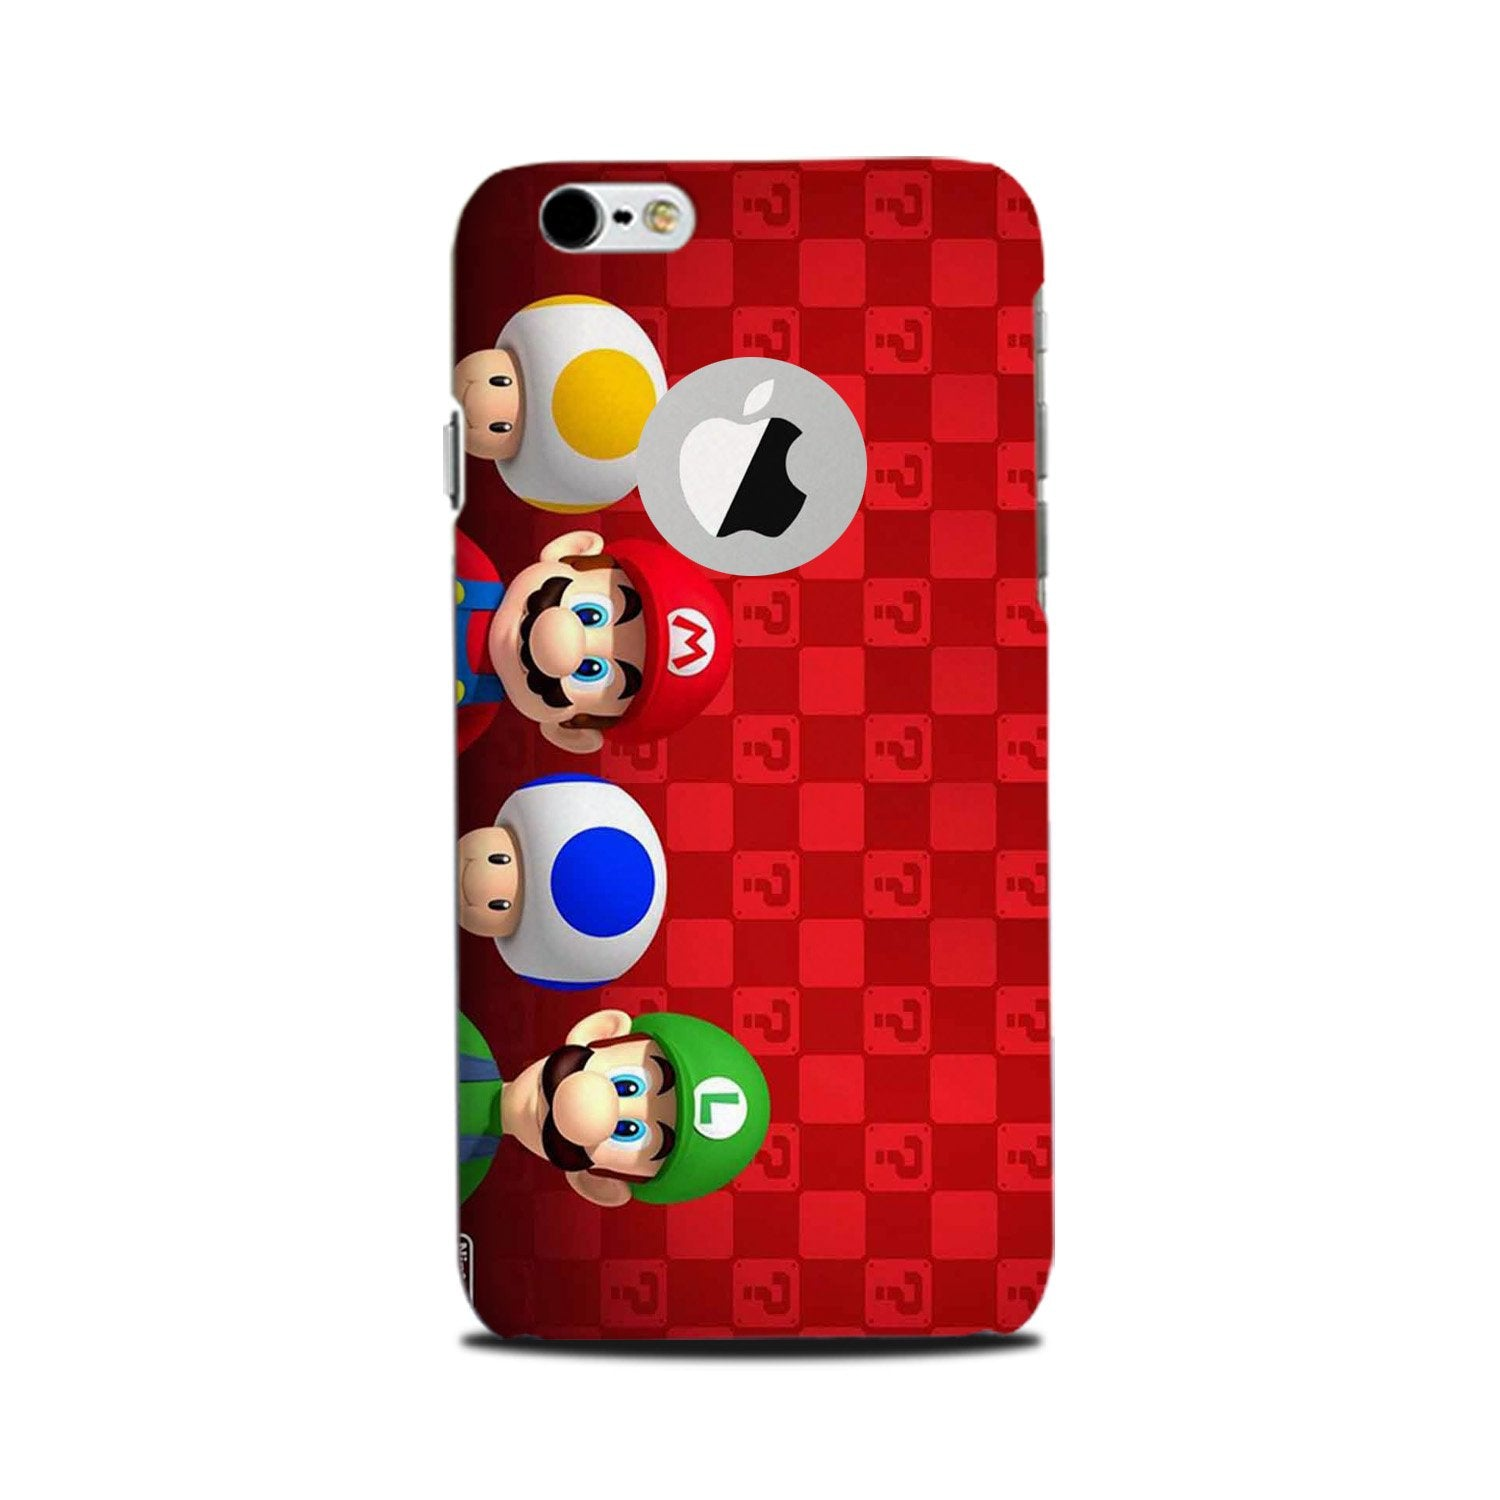 Mario Mobile Back Case for iPhone 6 Plus / 6s Plus Logo Cut  (Design - 337)